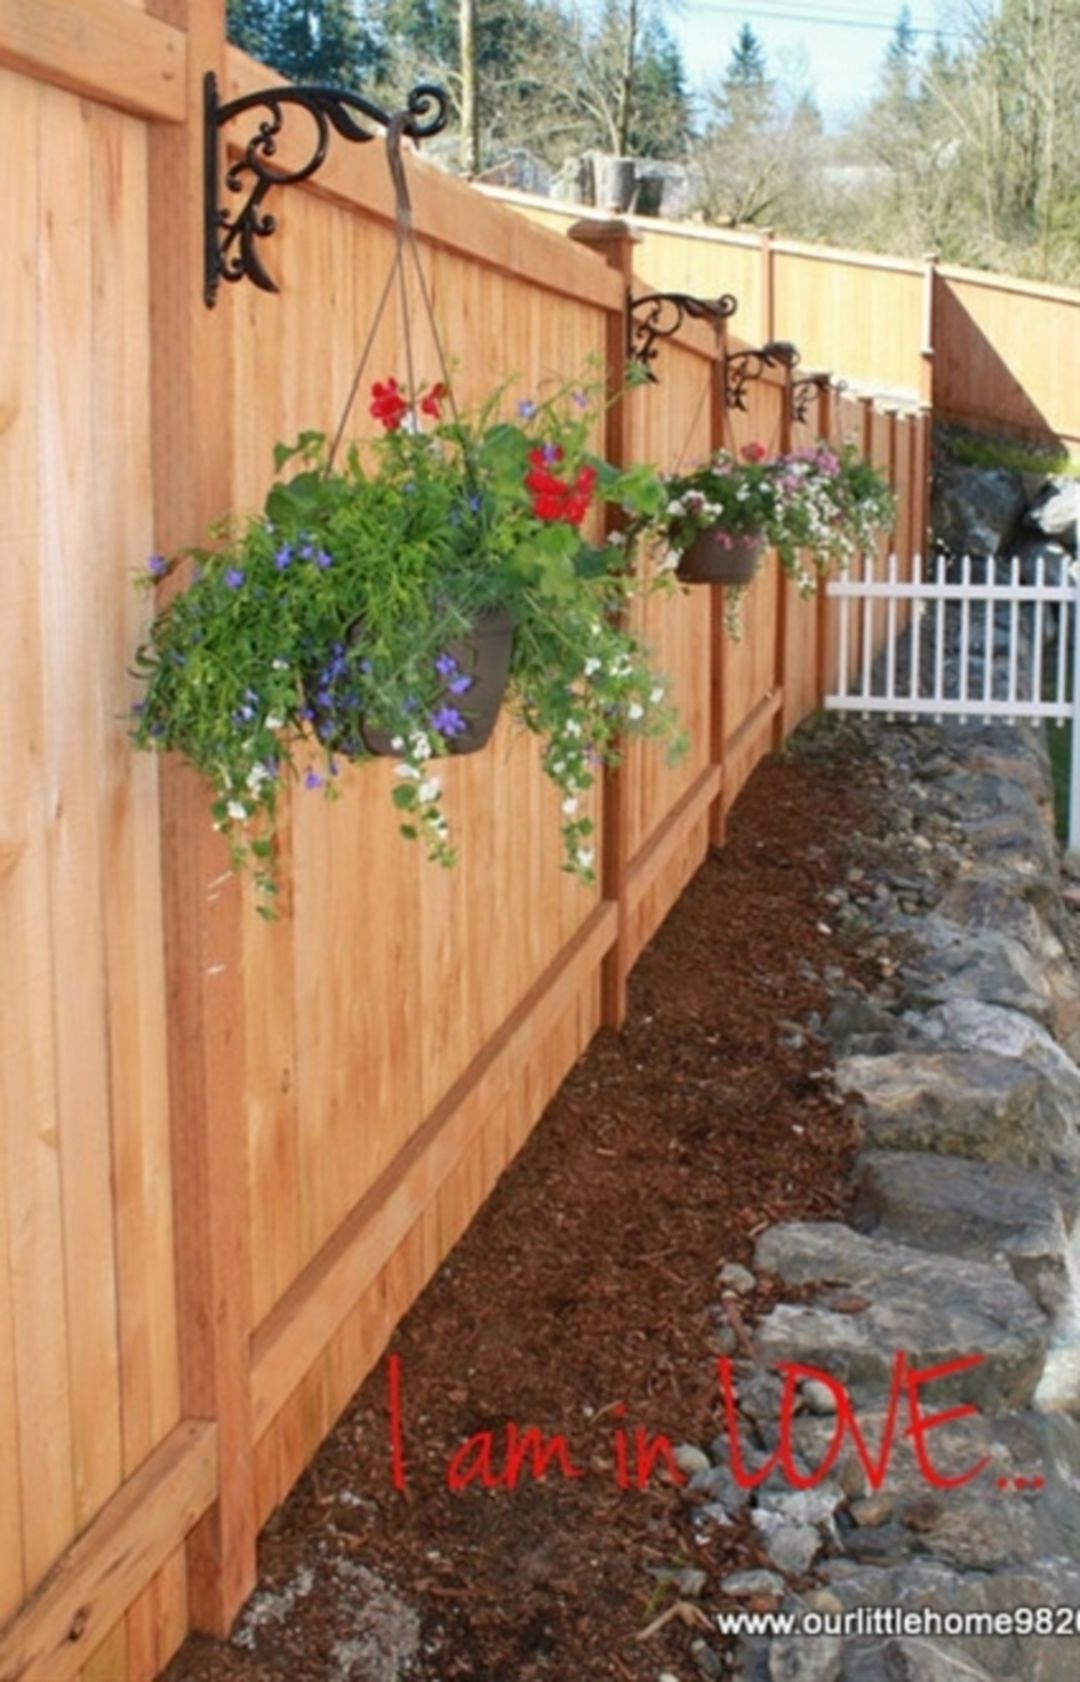 Backyard Privacy Fence Landscaping Ideas On A Budget 241 Privacy Fence Landscaping Backyard Fences Fence Landscaping